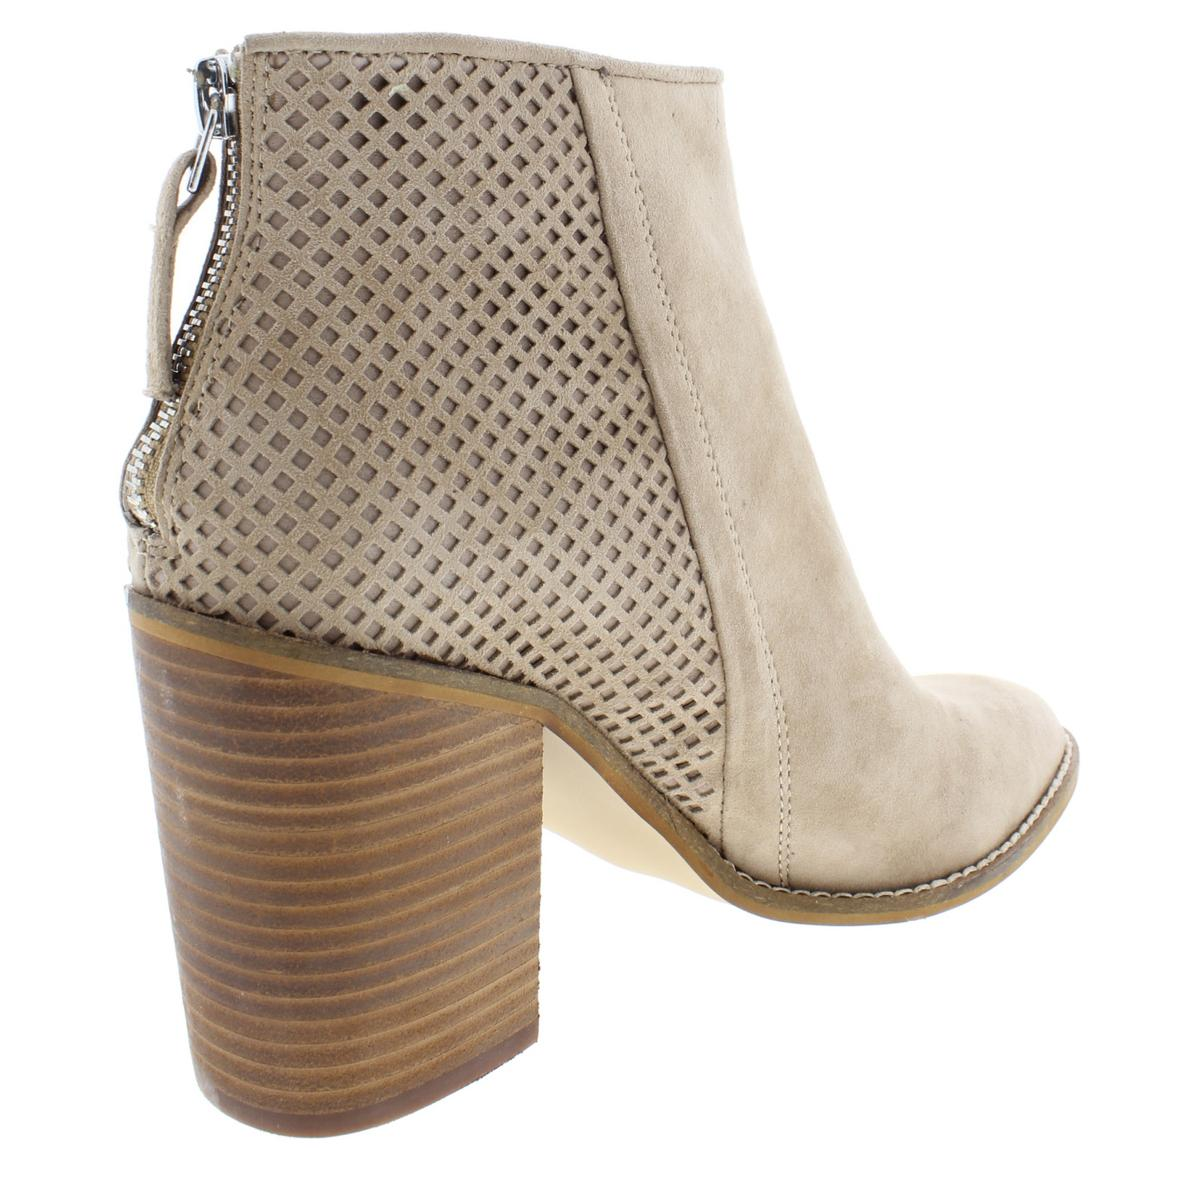 1a6ffb6cf30 Steve Madden Womens Replay Suede Stacked Heel Ankle Booties Shoes ...